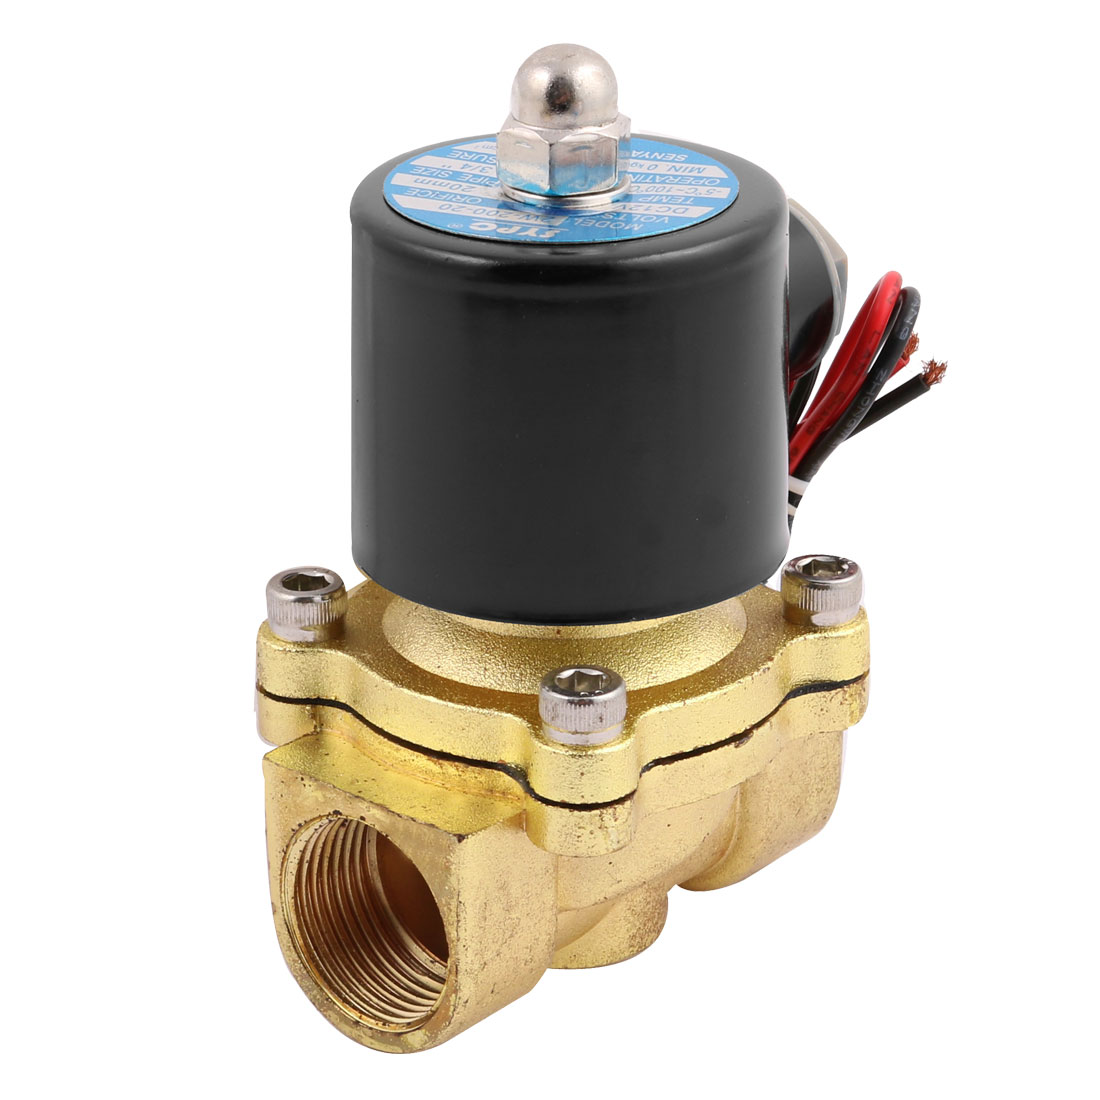 "DC12V 2W-200-20 NC 3/4"" 2 Position 2 Way Copper Air Water Solenoid Valve"